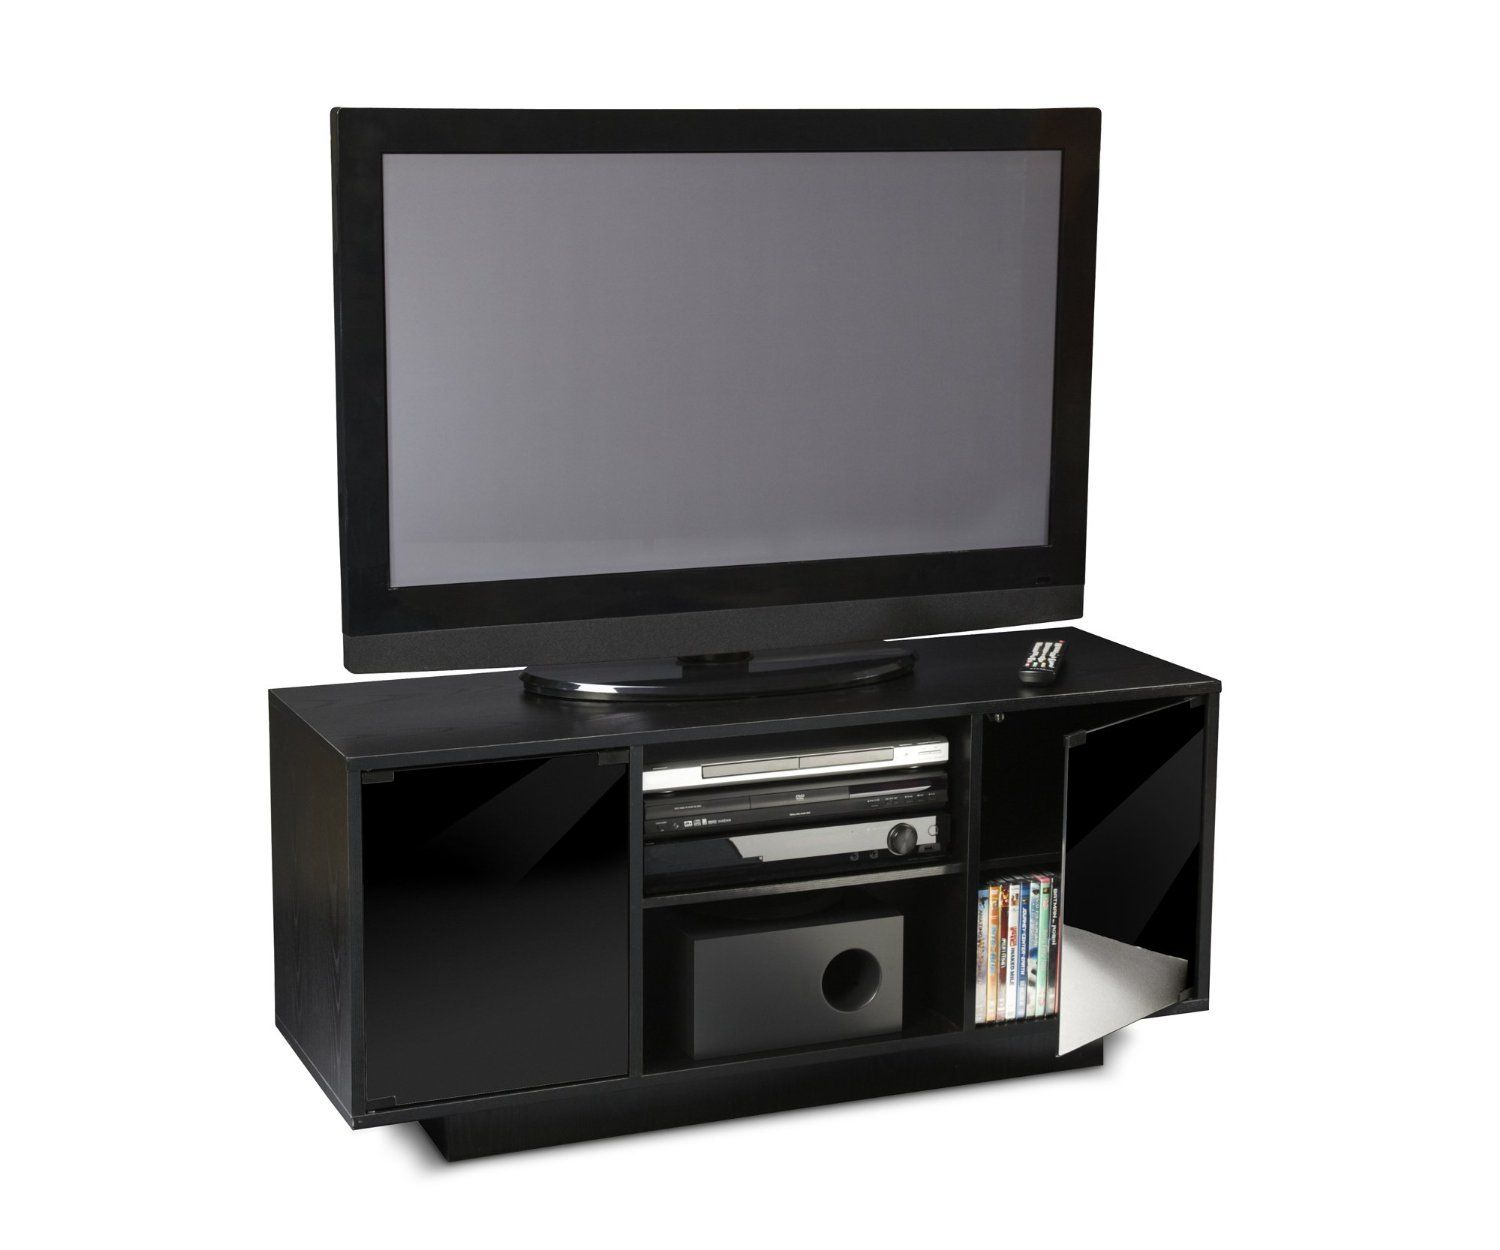 Amazoncom Convenience Concepts 9726 Monte Carlo Tv Stand For Flat